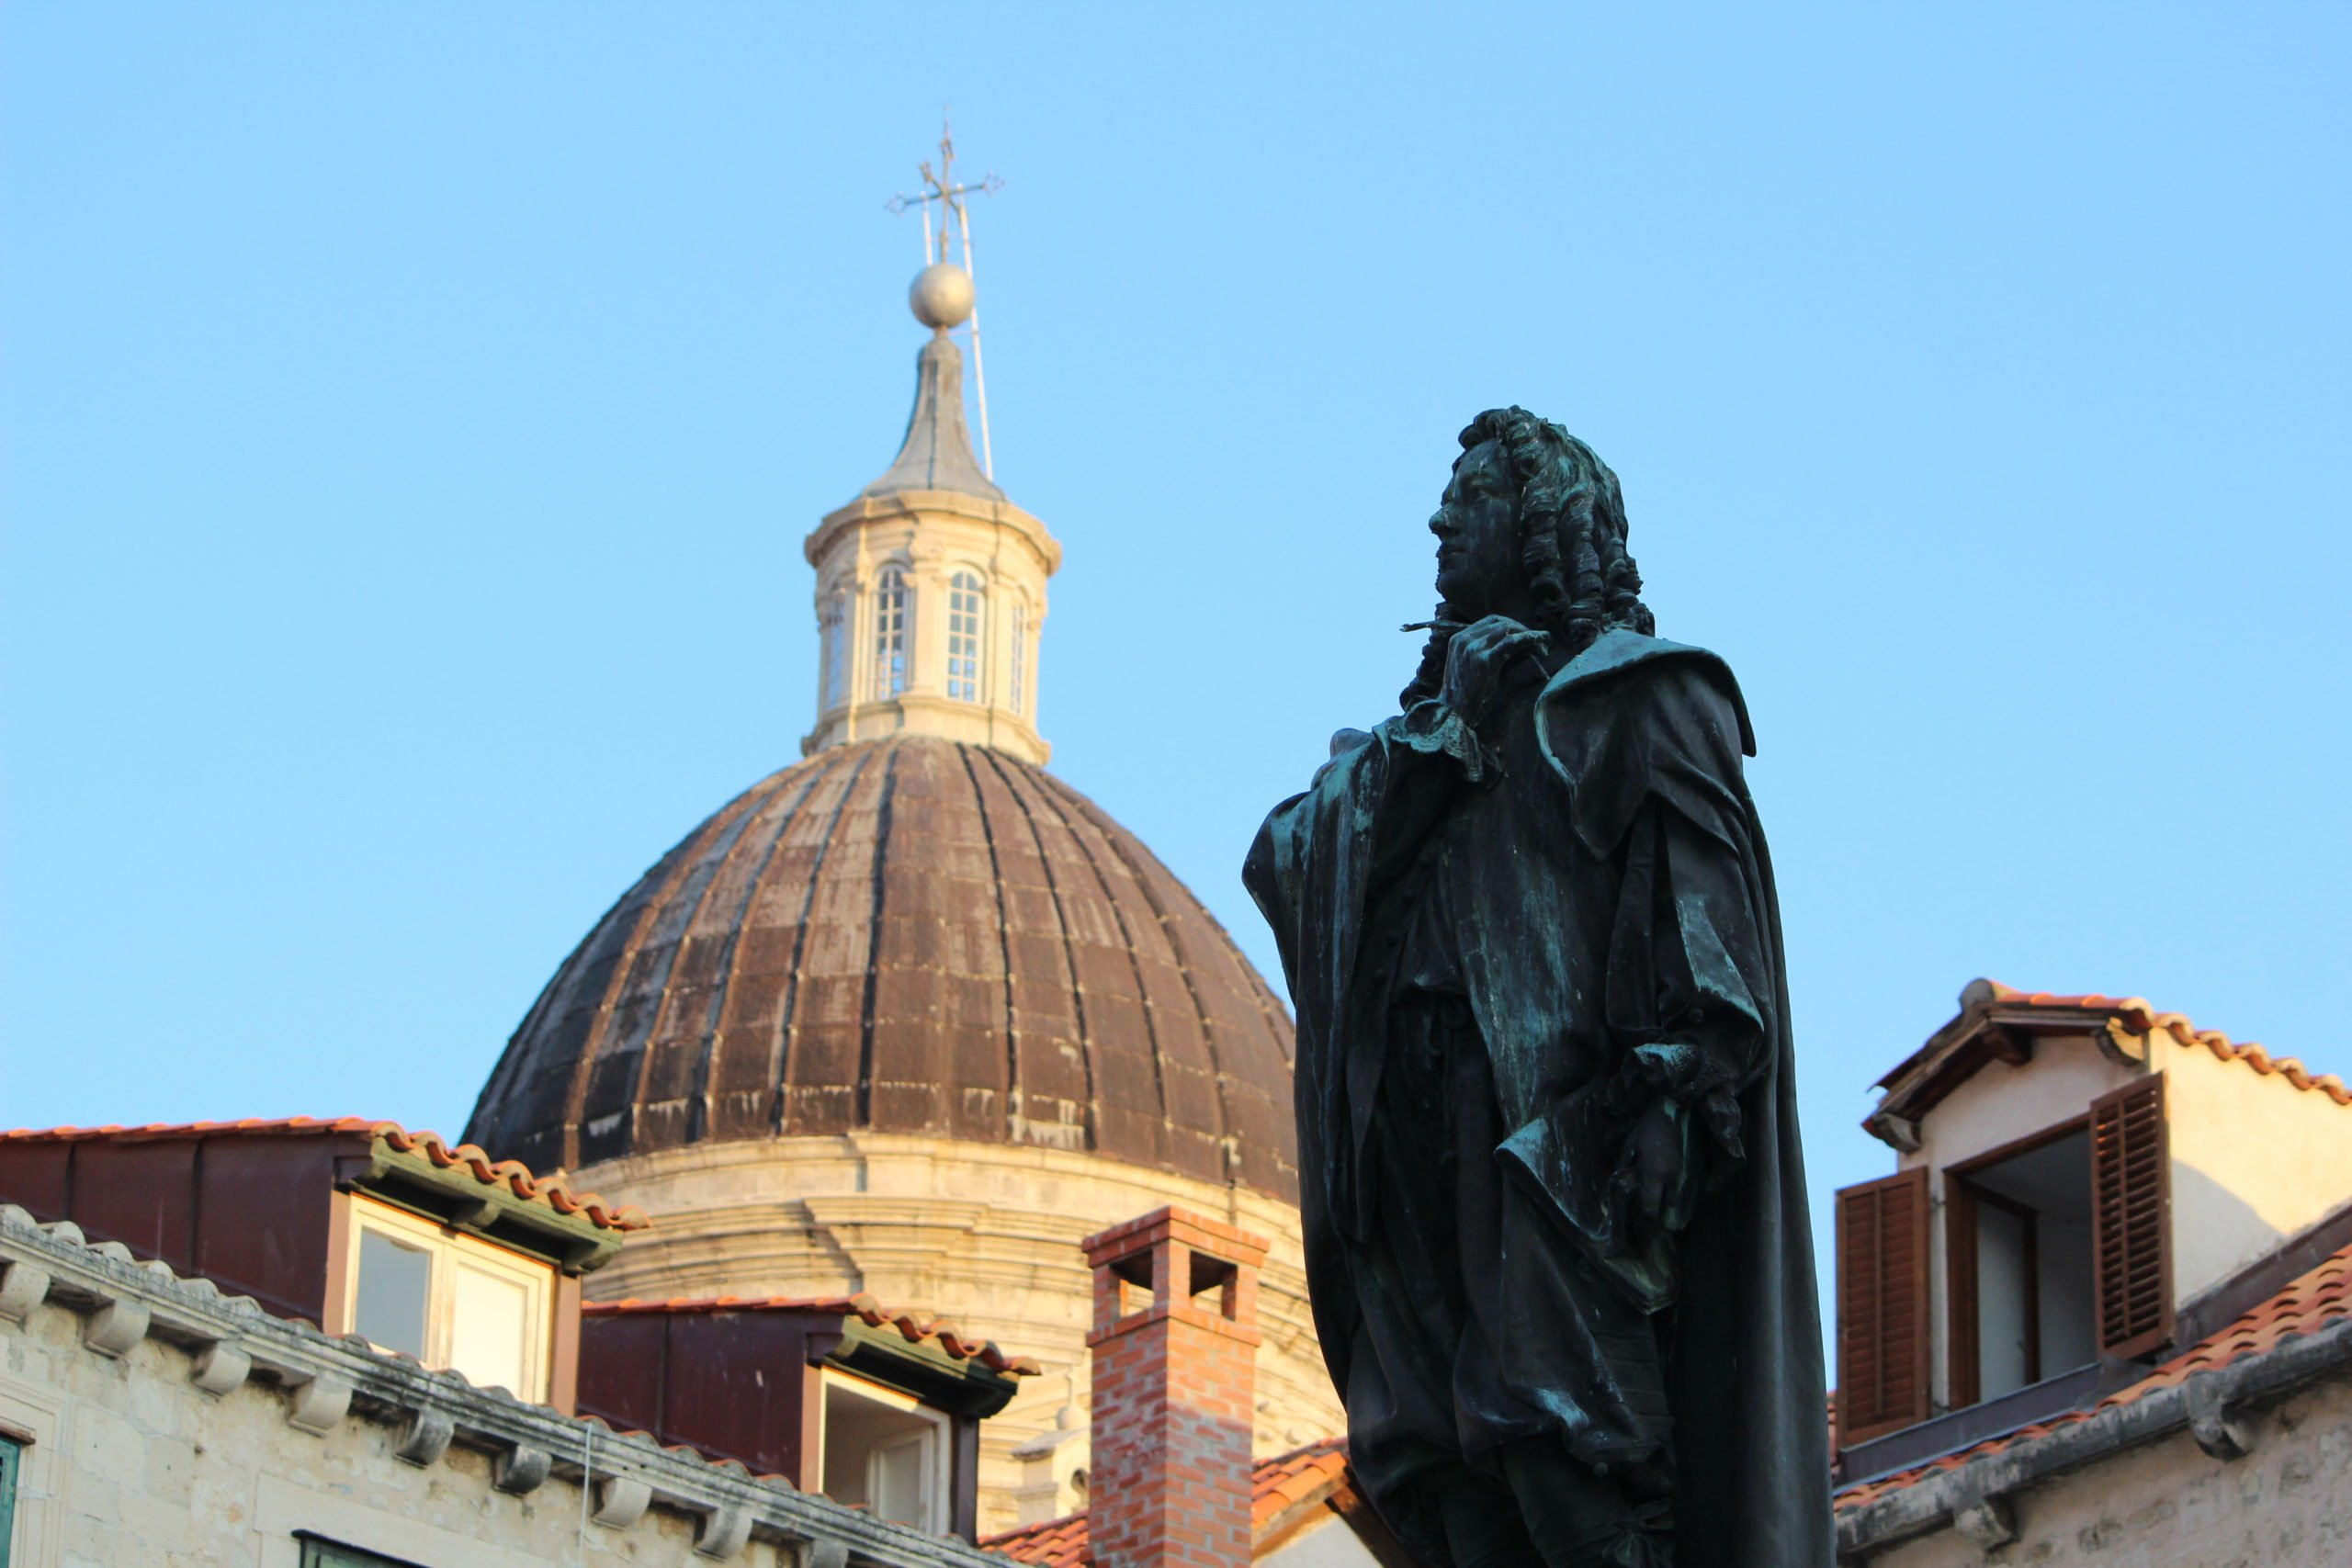 Stop At The Statue Of Poet Poet Ivan Gundulic During The Dubrovnik Highlights & Cavtat Shore Excursion At Dubrovnik Port